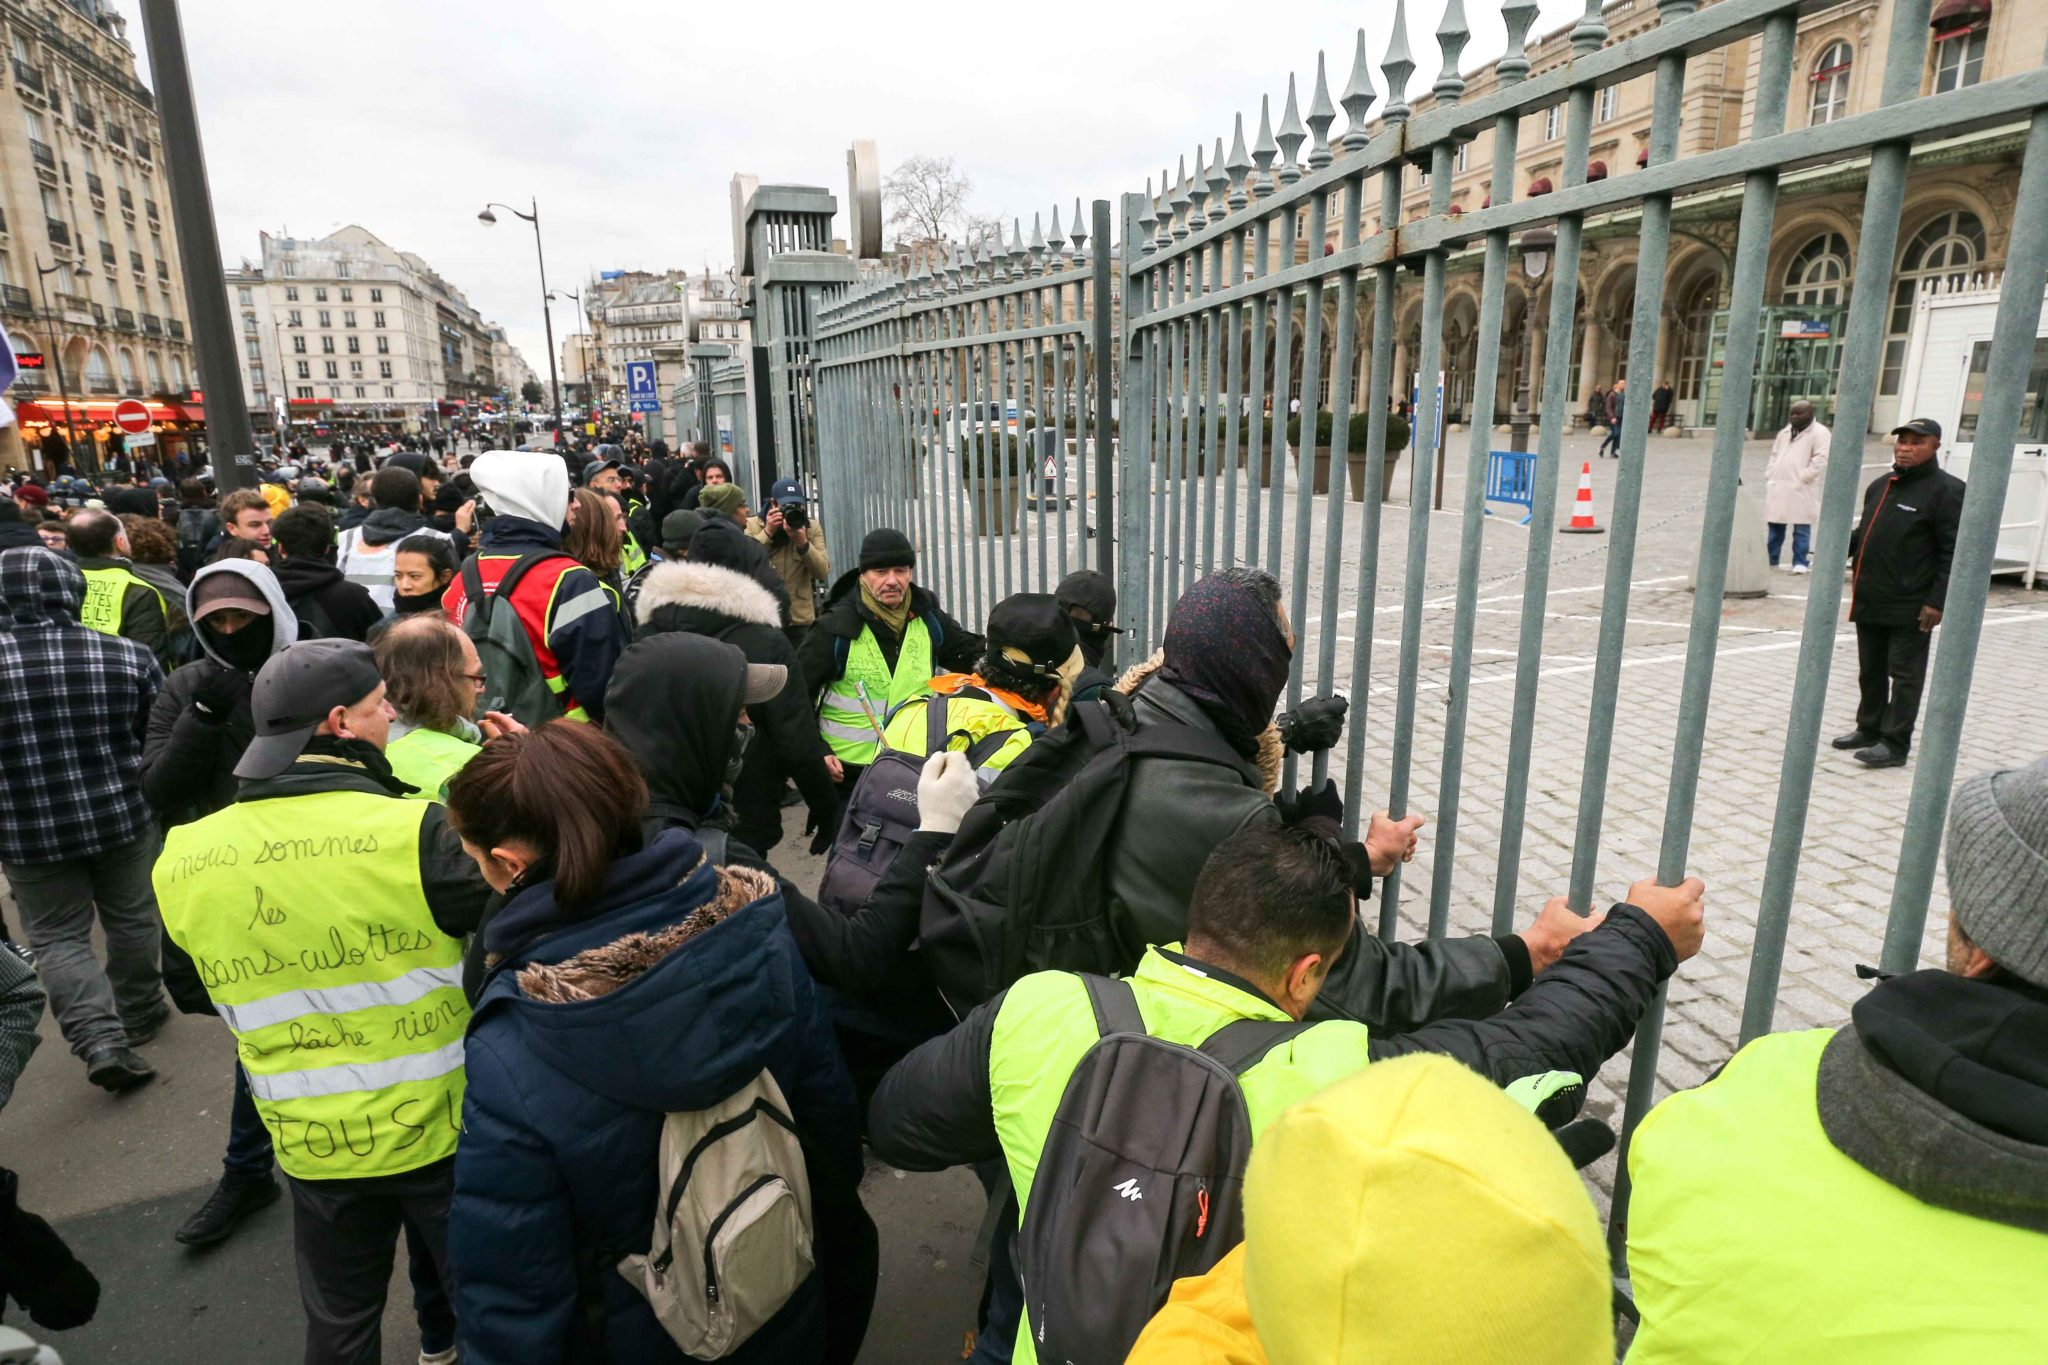 Demonstrators wearing yellow vests break down the gate of the Gare de l'Est train station in Paris during a demonstration called by French national trade union General Confederation of Labour (CGT) against the pension reform on January 4, 2020. After 30